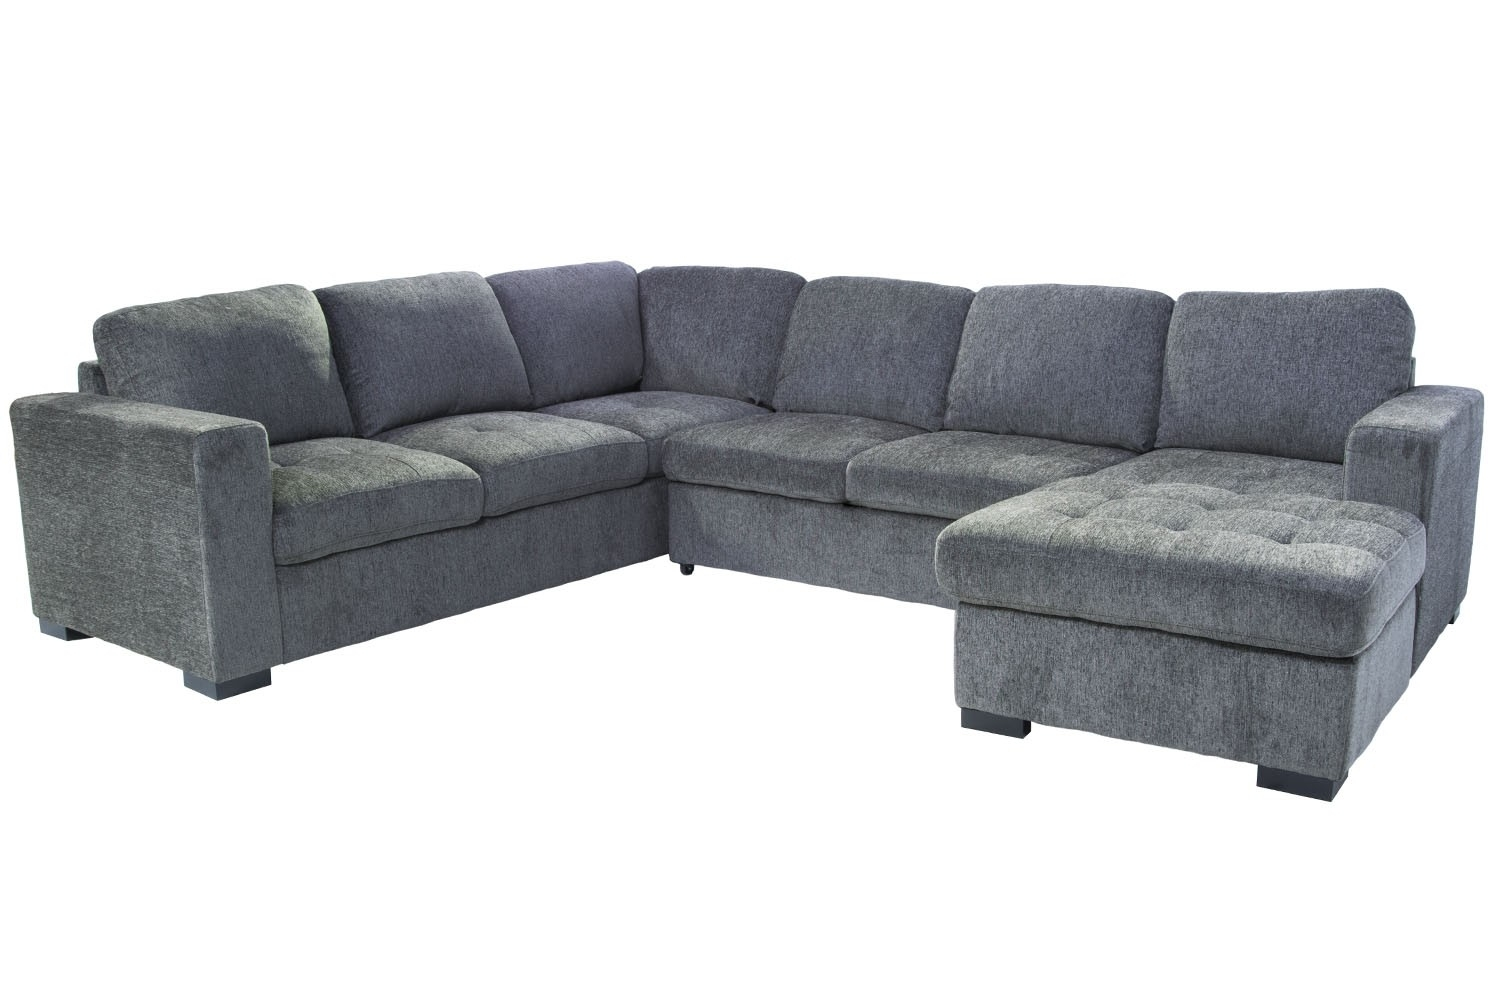 Claire 3 Piece Right Facing Chaise Sectional In Gray | Save Mor Inside Aquarius Light Grey 2 Piece Sectionals With Laf Chaise (Image 8 of 25)